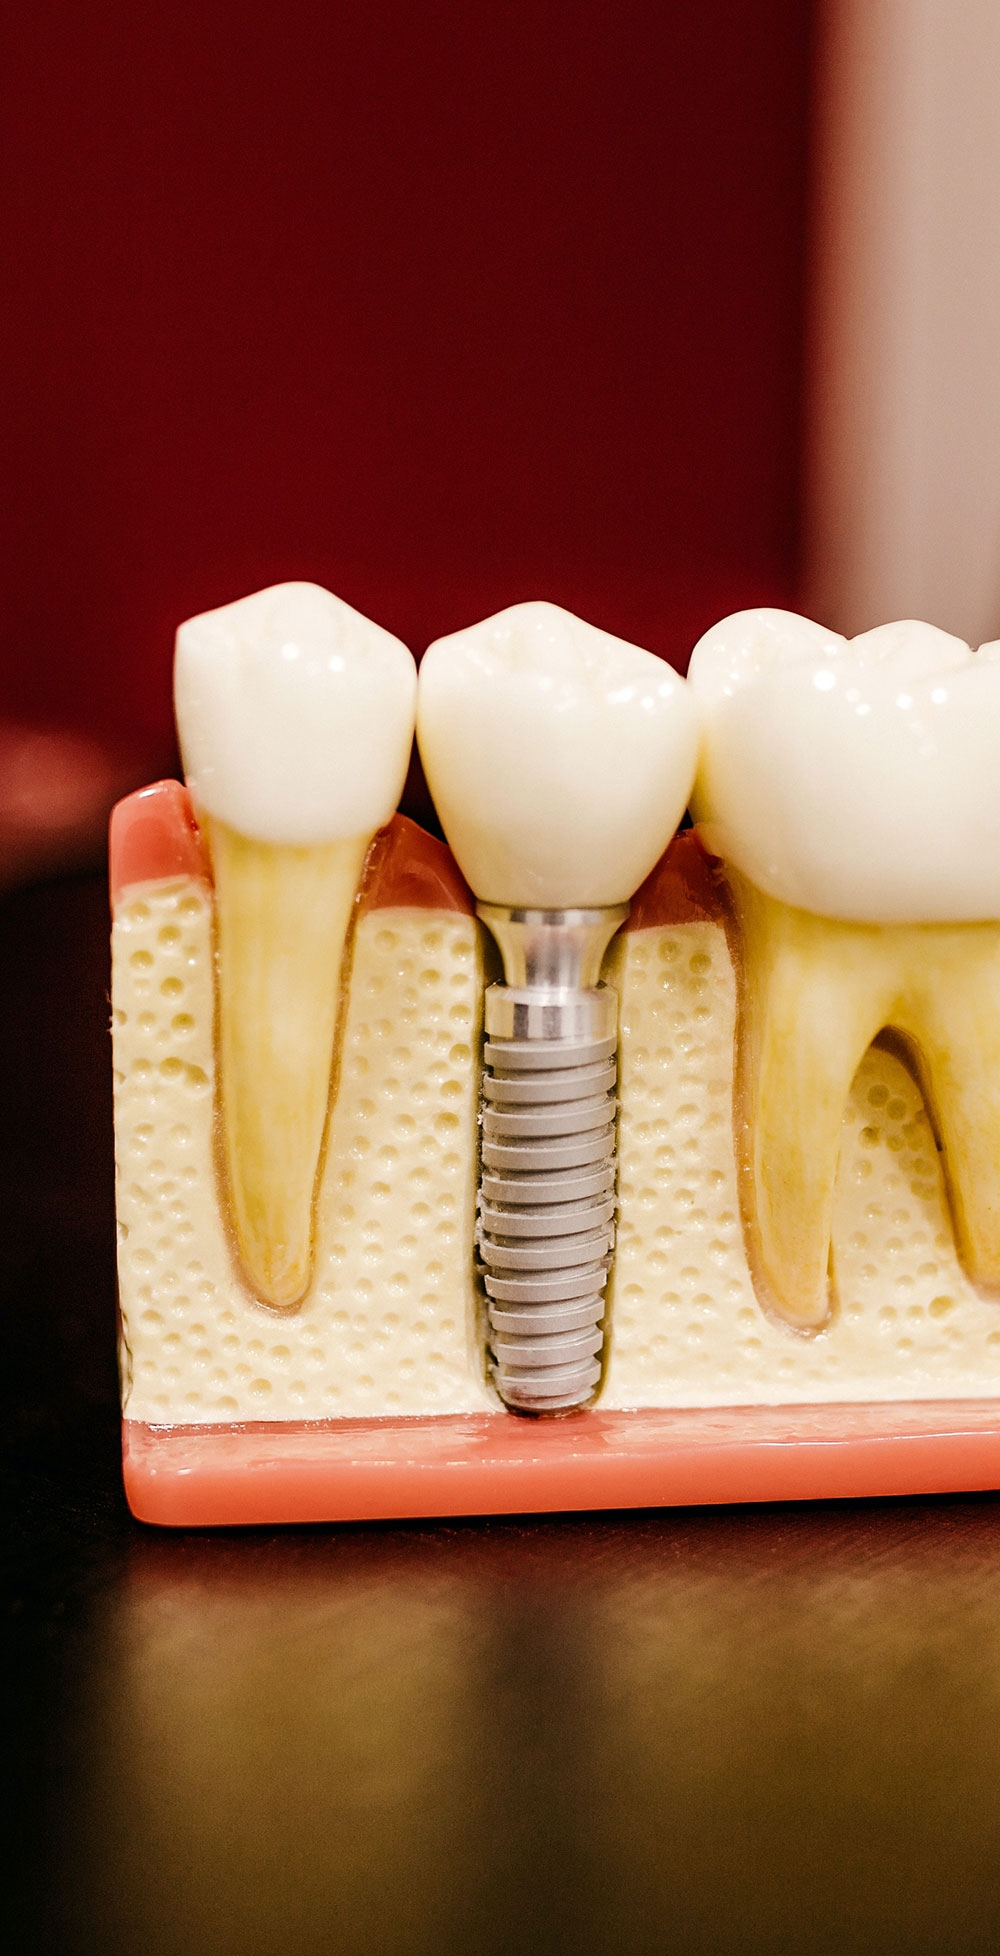 Dental implants in patients who have suffered from cancer